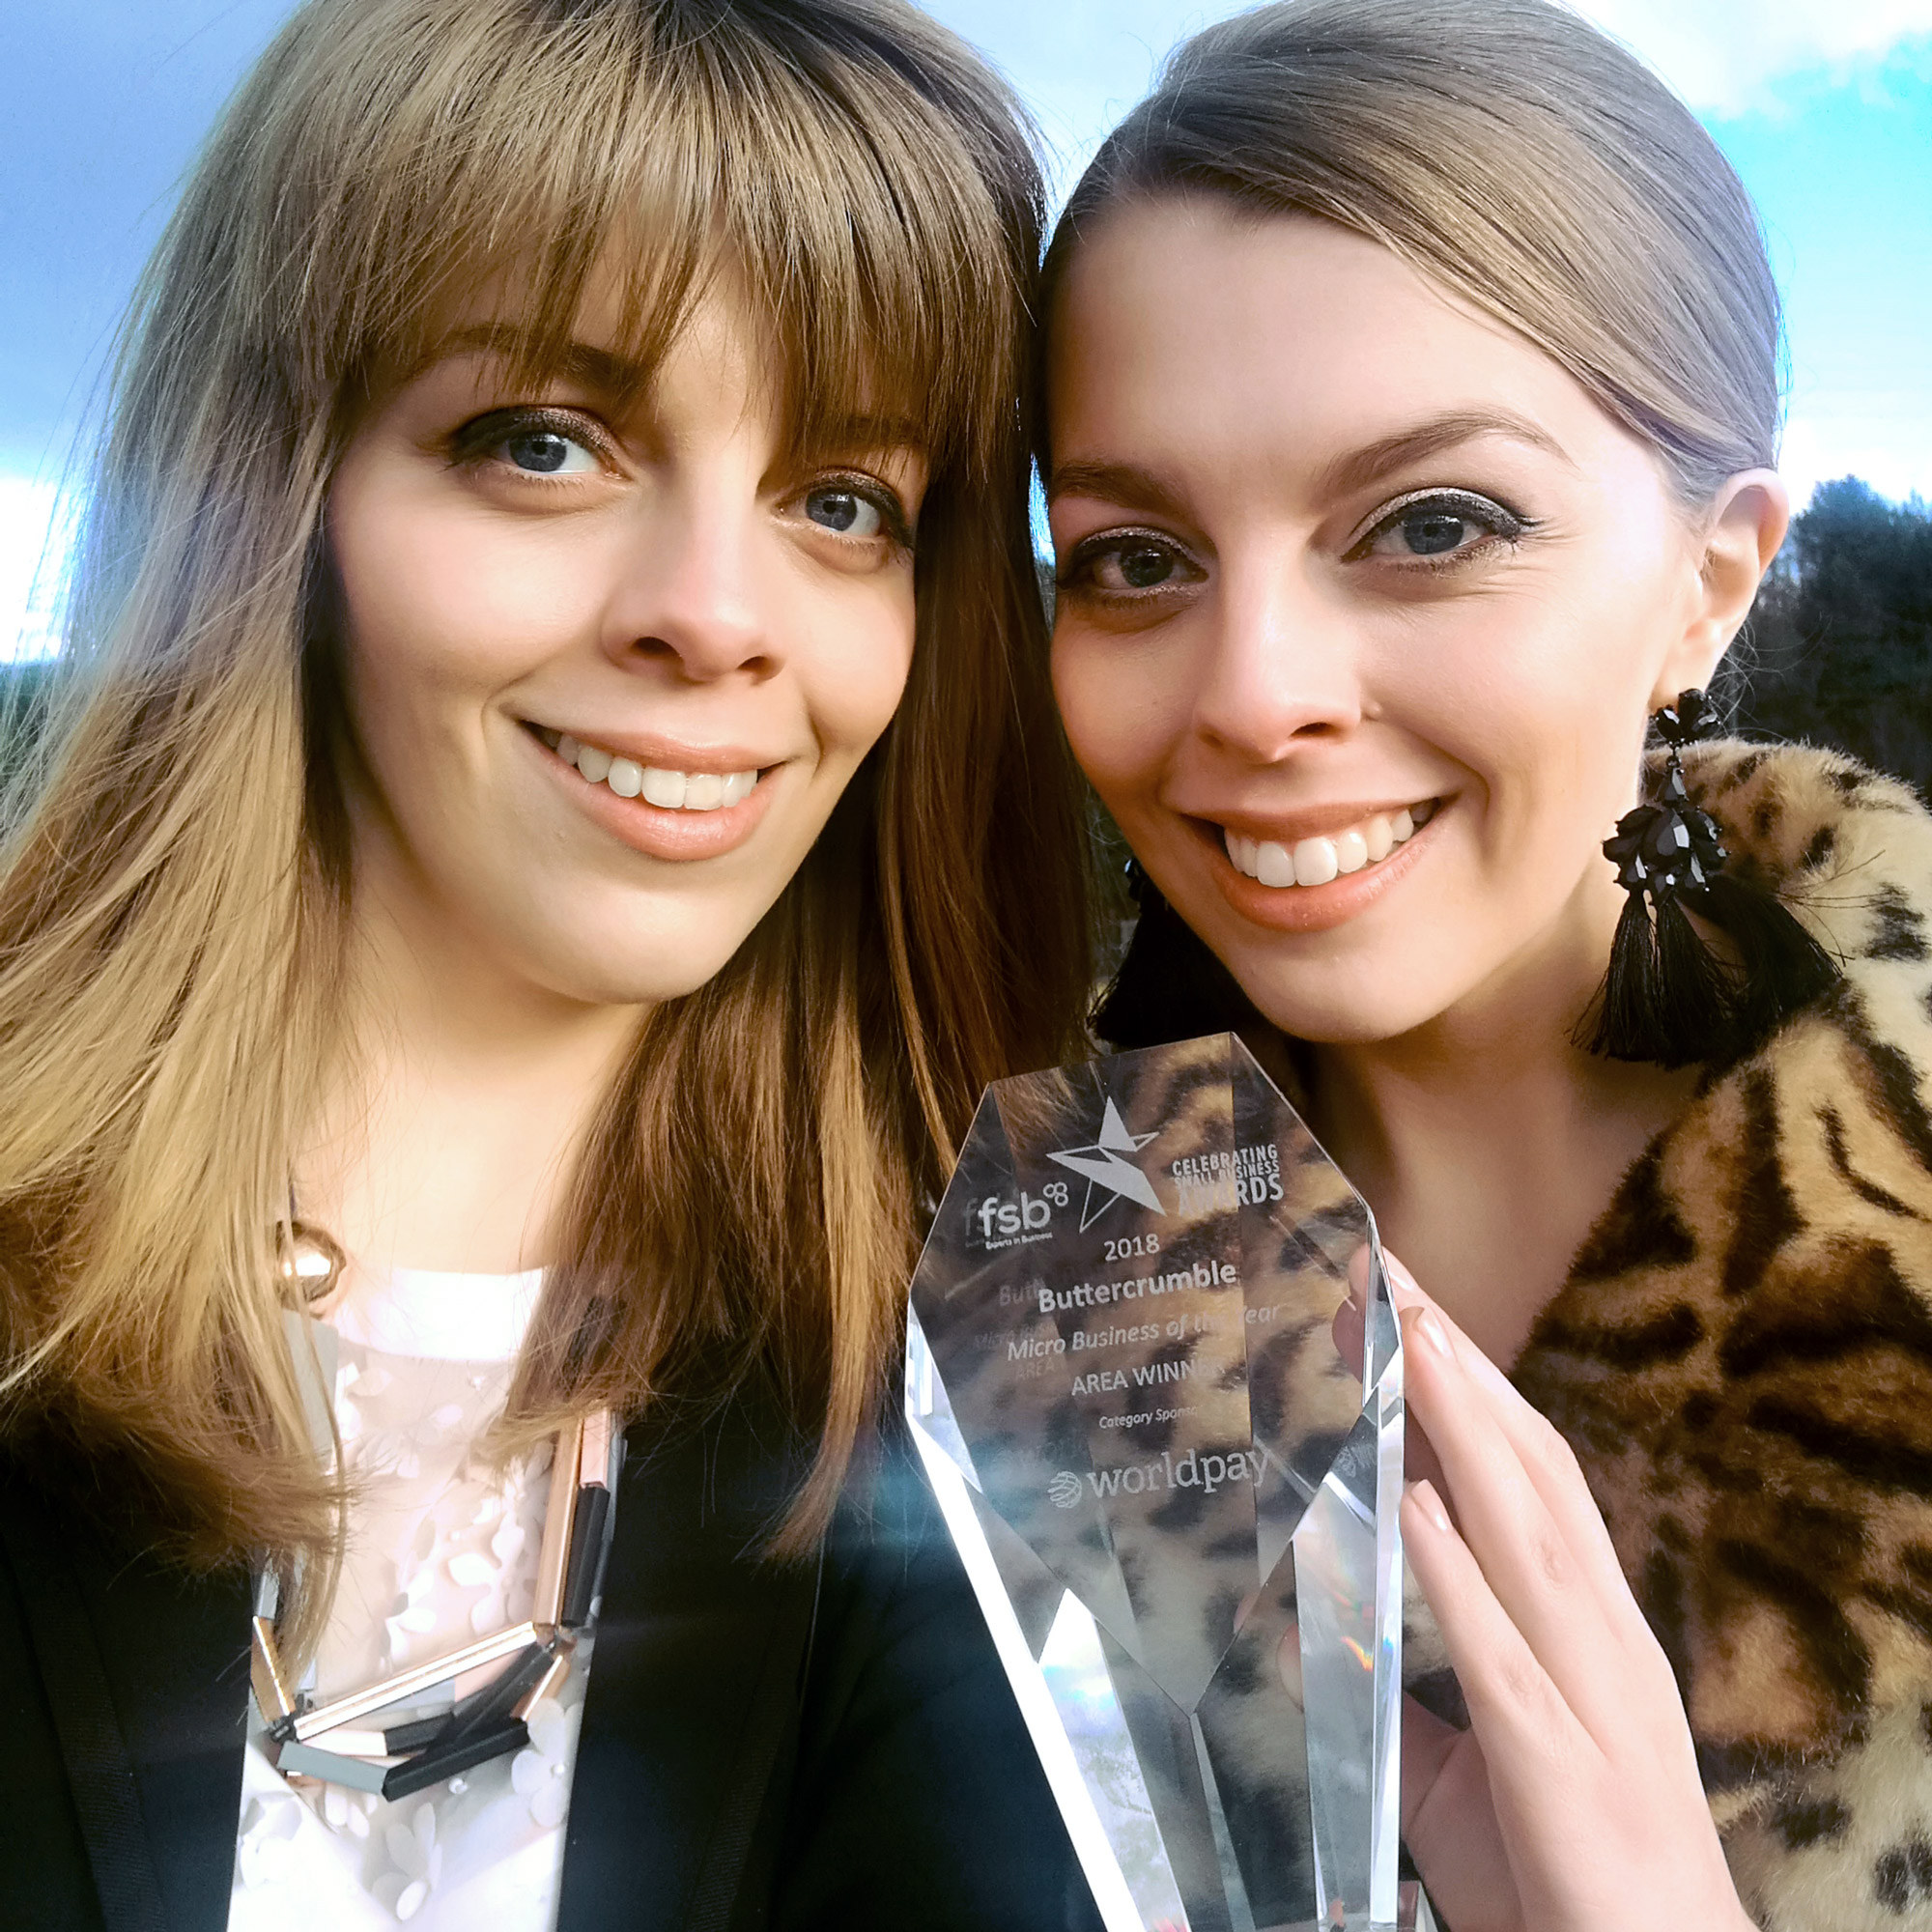 FSB-Micro-Business-of-the-Year-Yorkshire-2018--3--Buttercrumble-Web.jpg